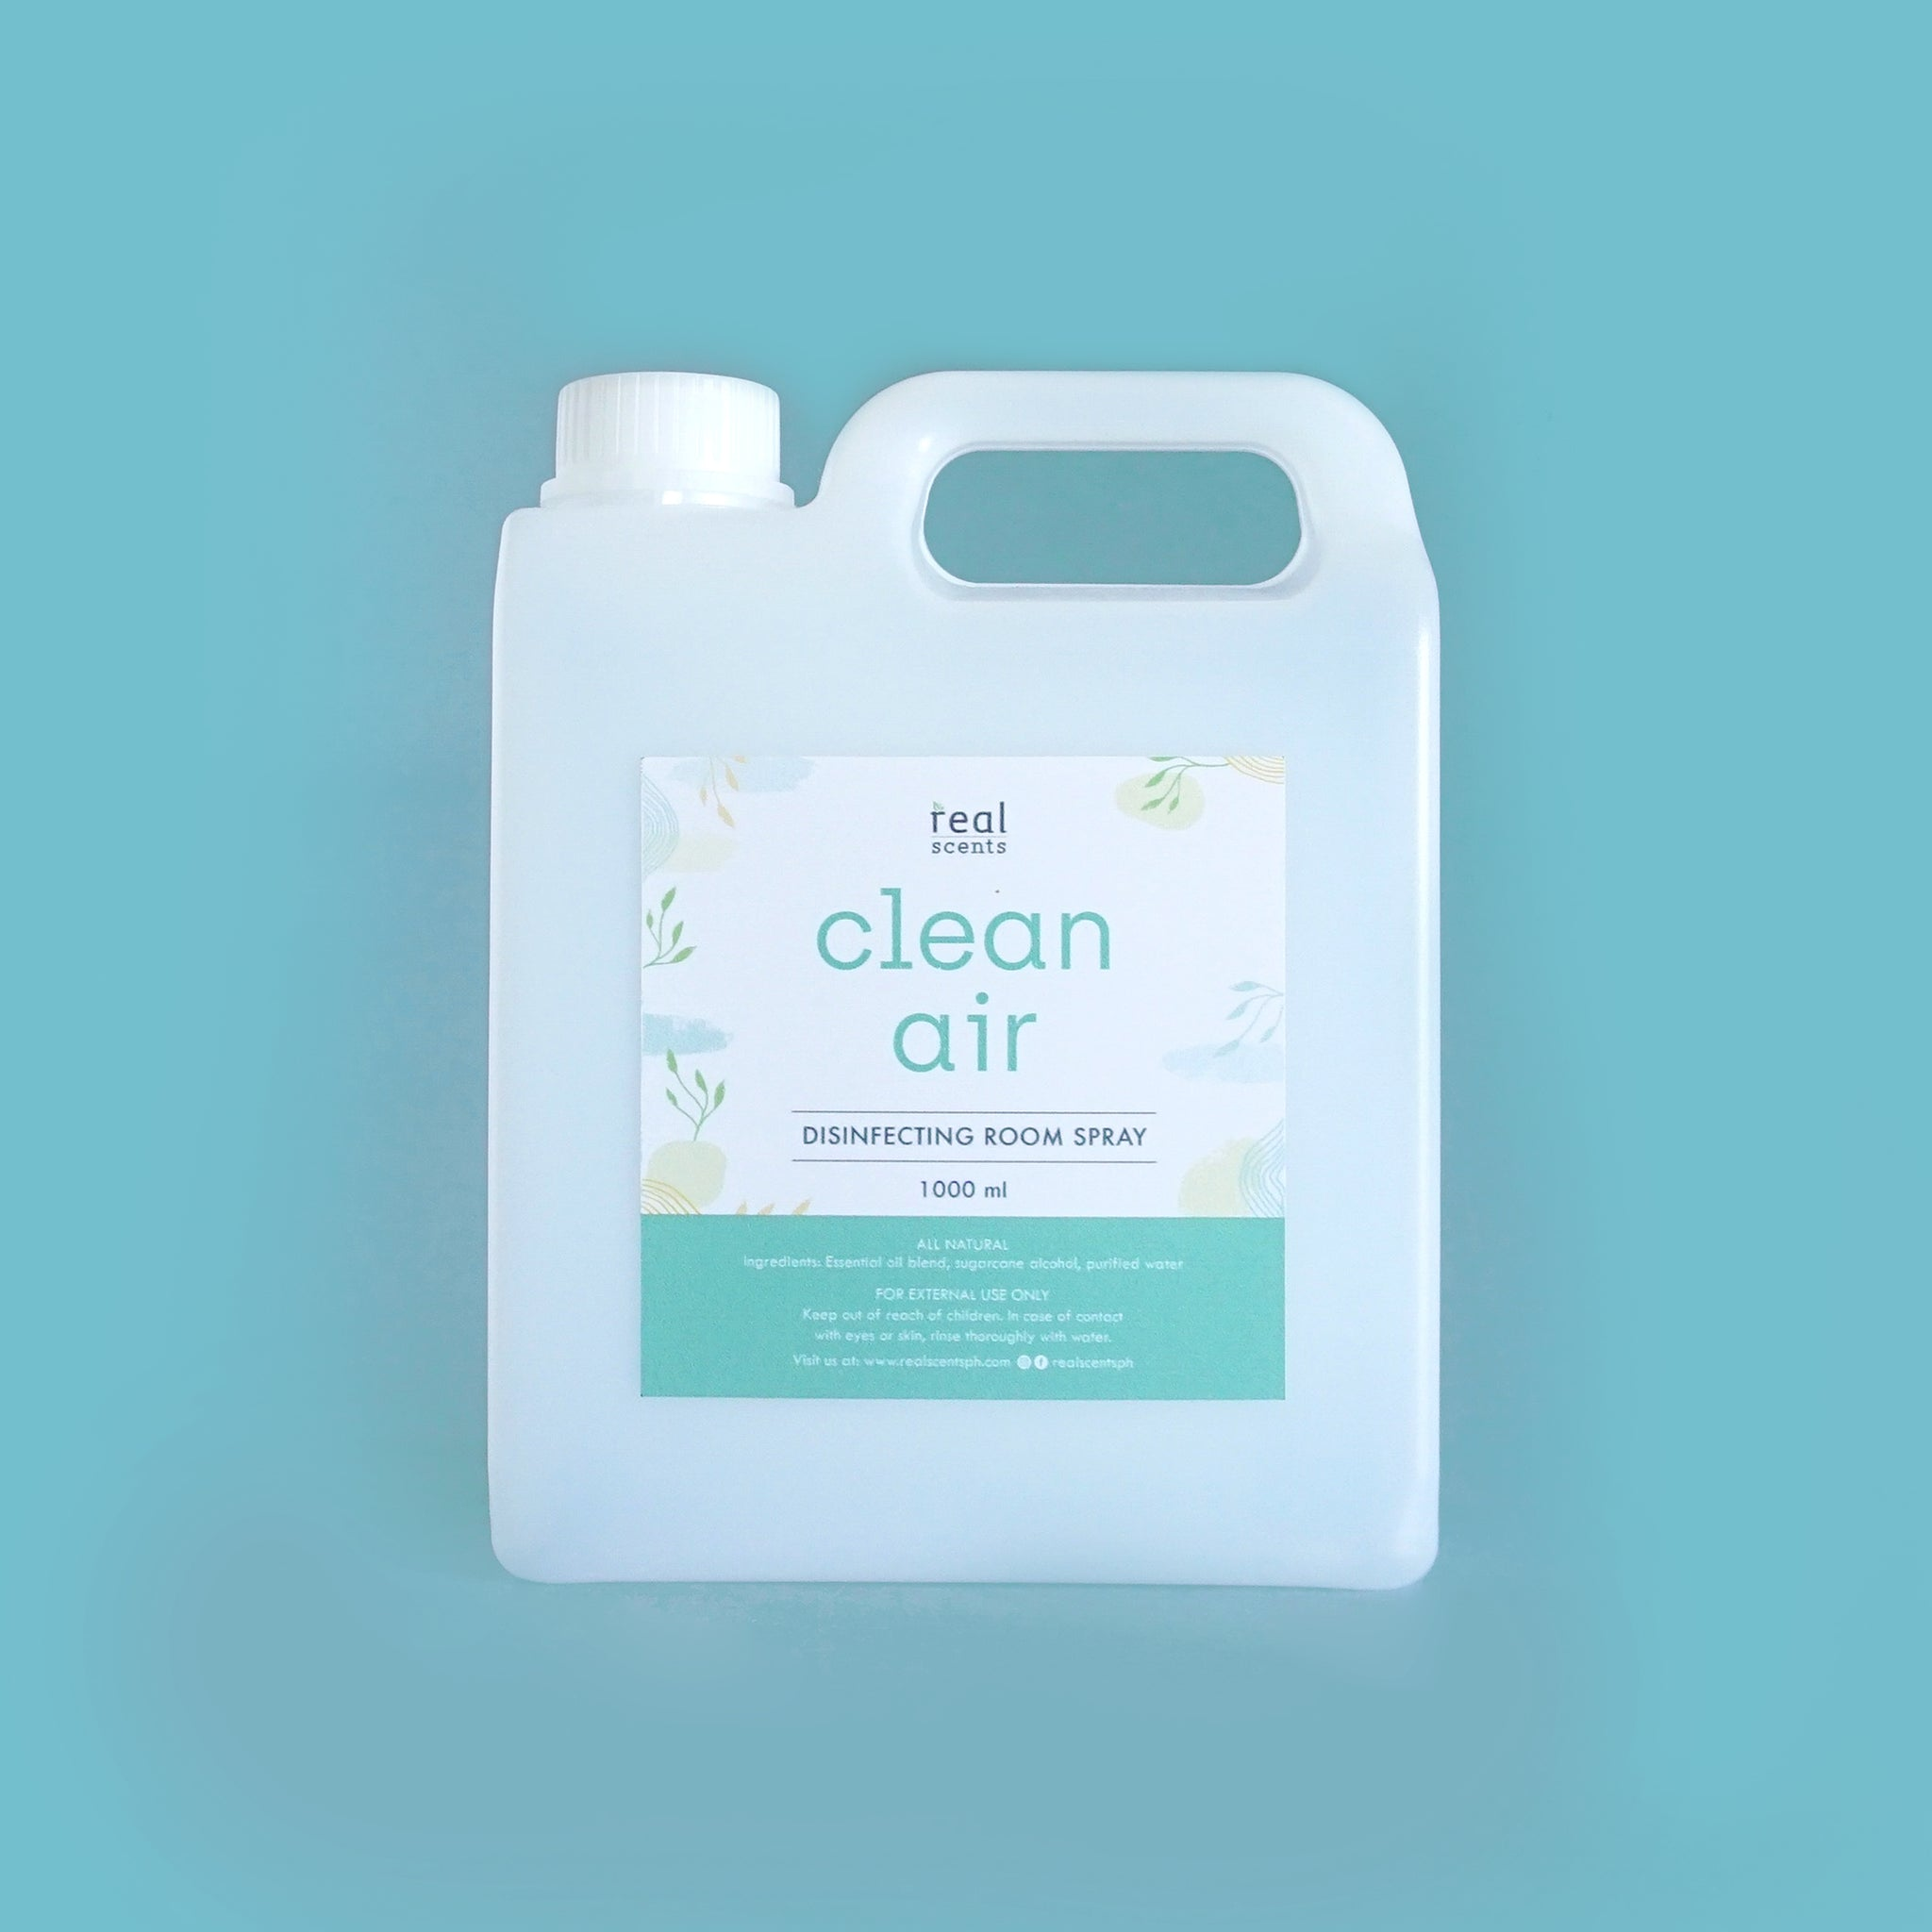 Clean Air Disinfecting Room Spray REFILL 1 liter